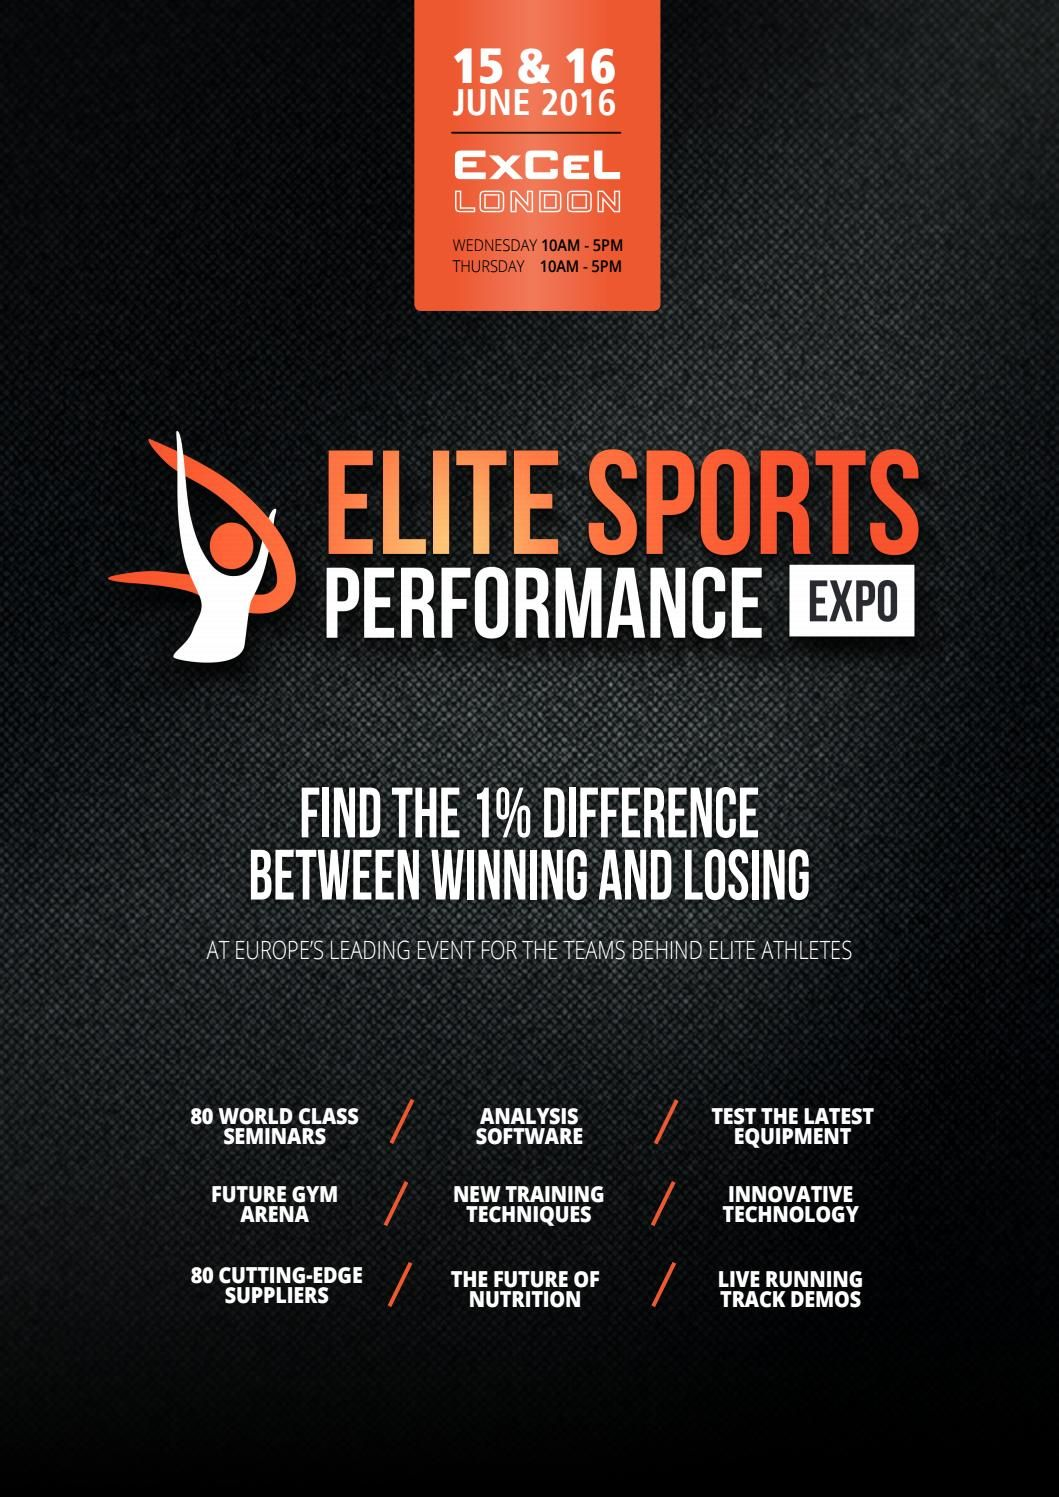 Elite Sports Performance Expo 2016 Show Guide